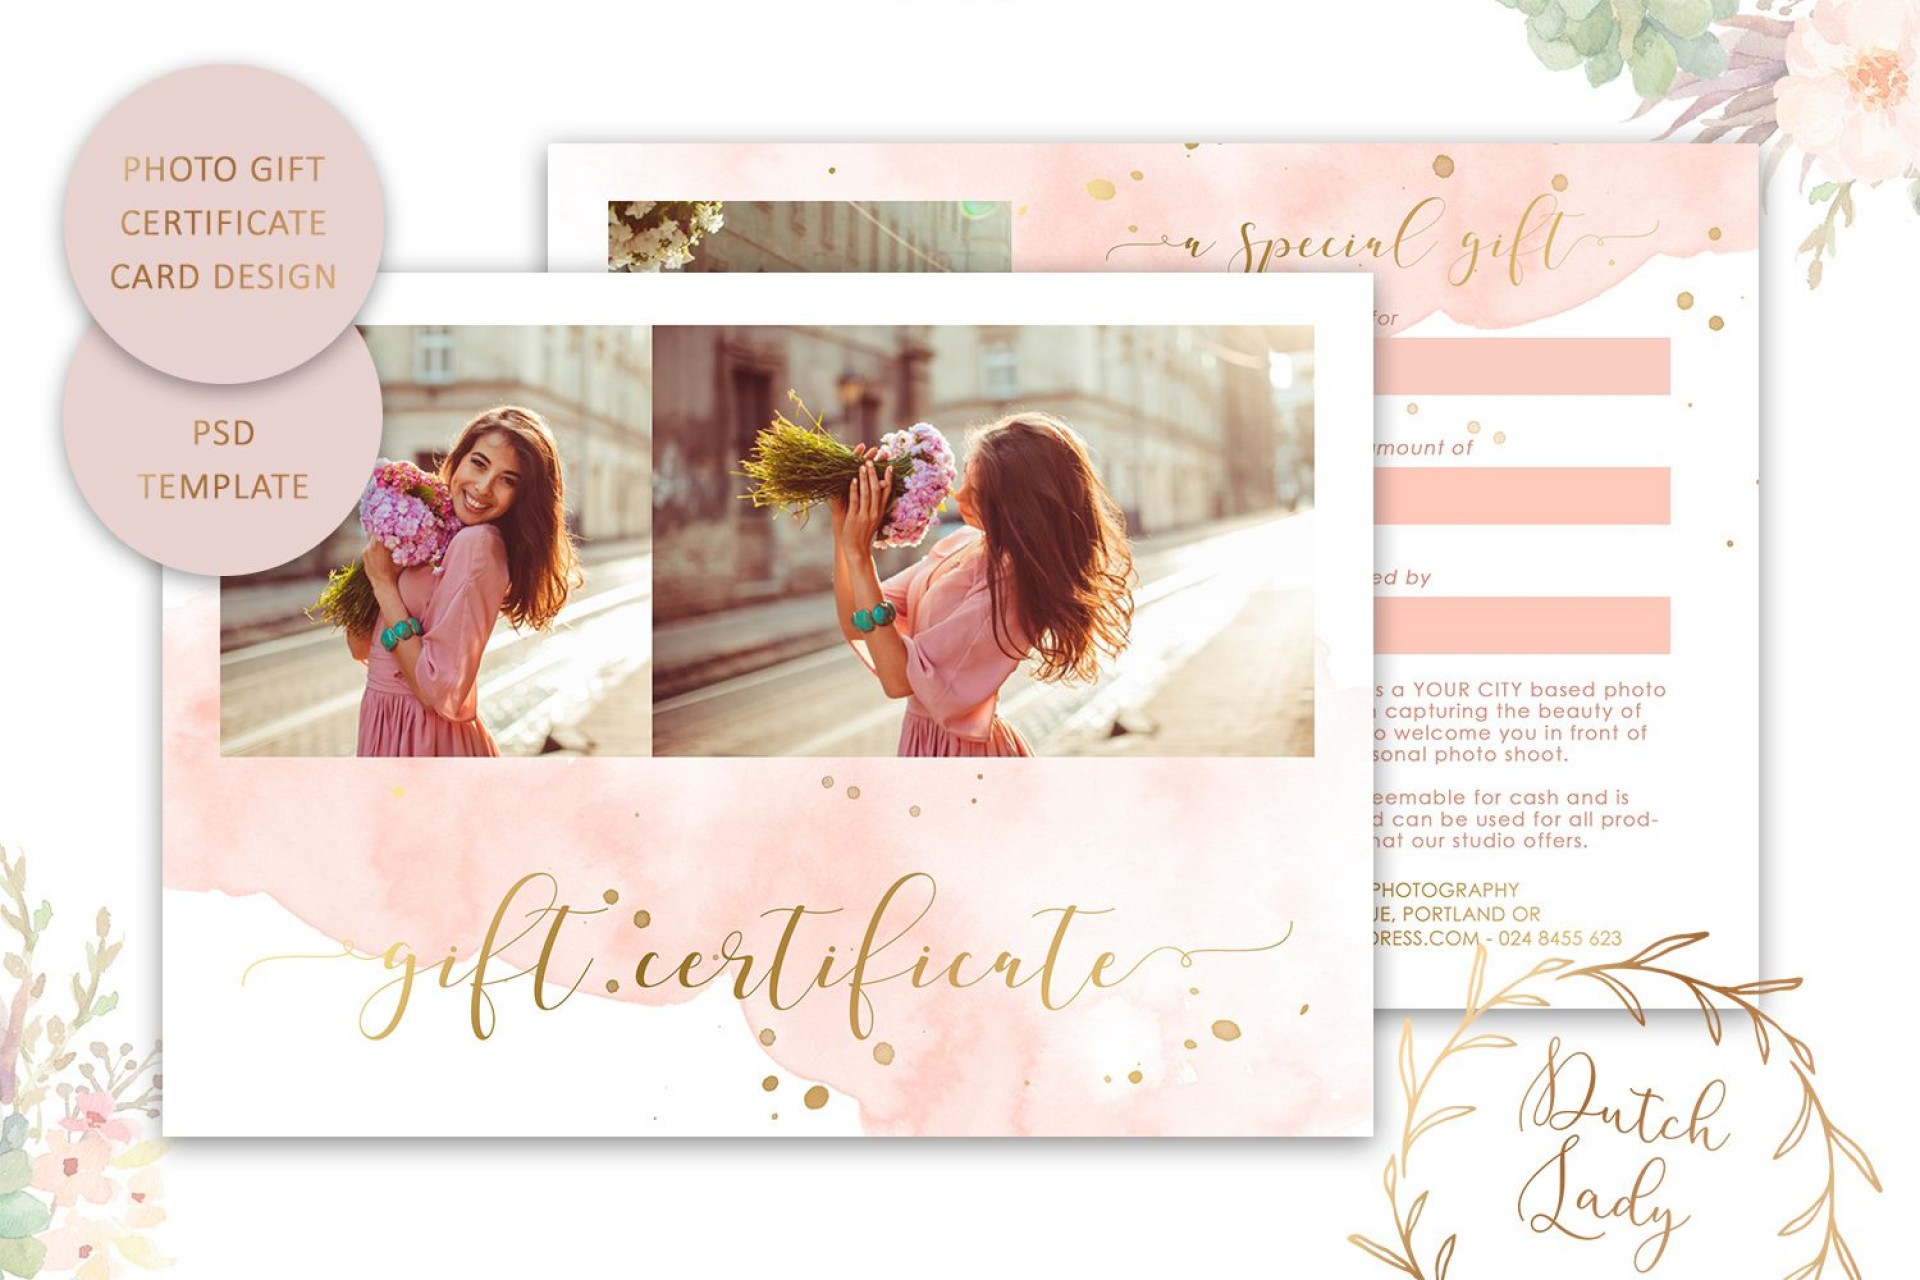 009 Outstanding Gift Card Template Psd High Resolution  Christma Photoshop Free Holder1920